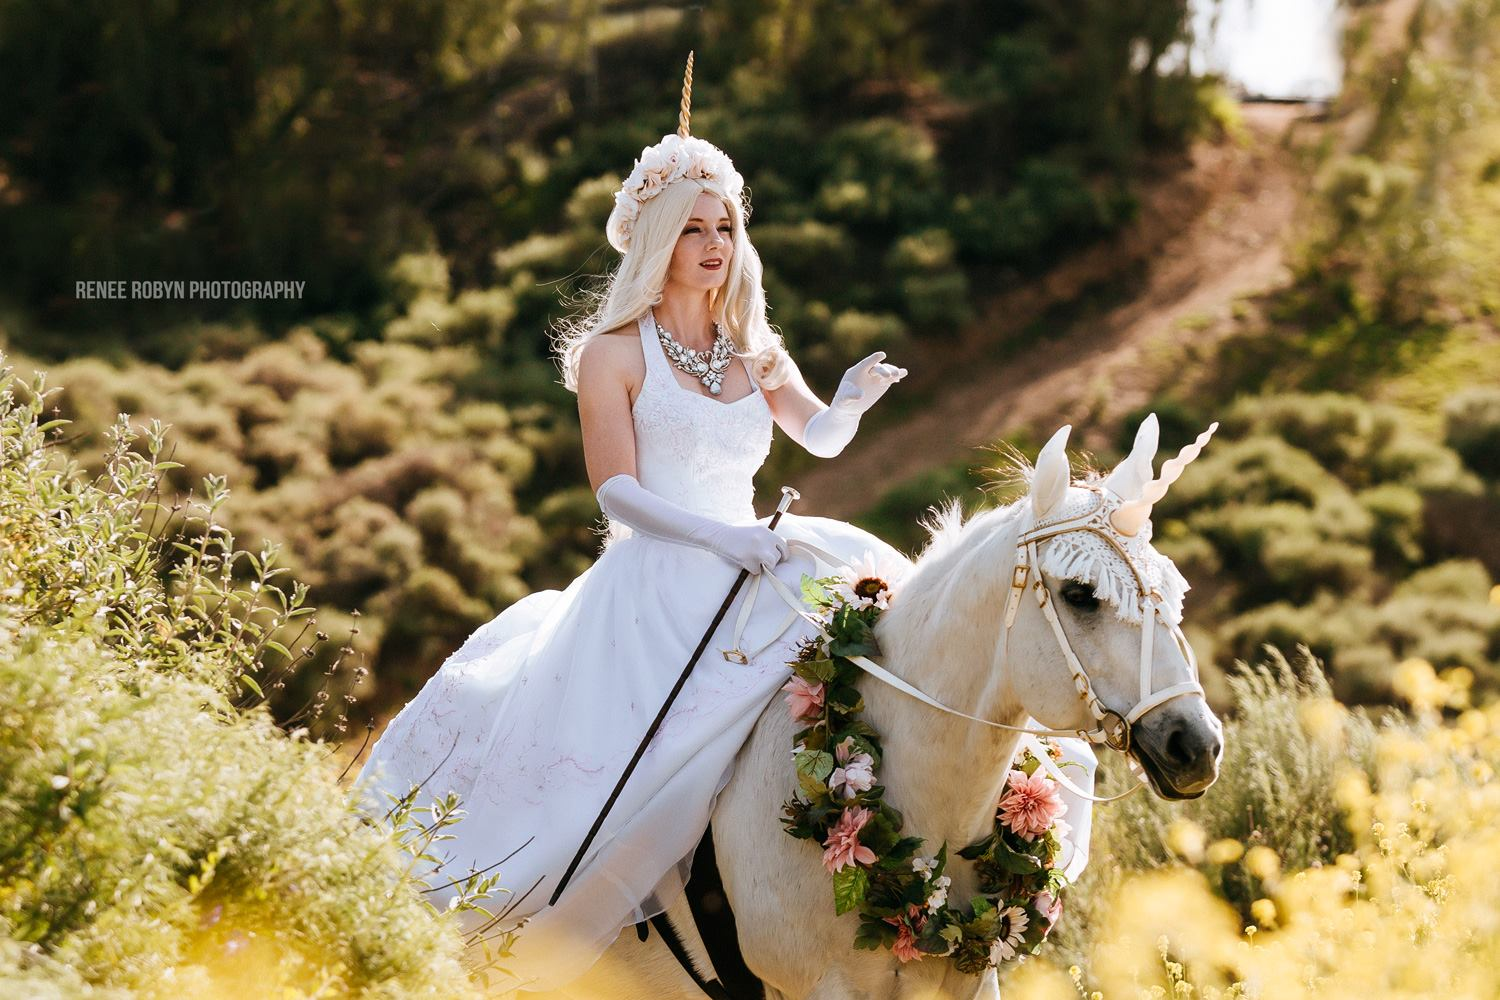 Ride a Unicorn at Your Wedding! We Offer A Gorgeous Sidesaddle Horse Package Perfect for Los Angeles and Ventura County Brides!